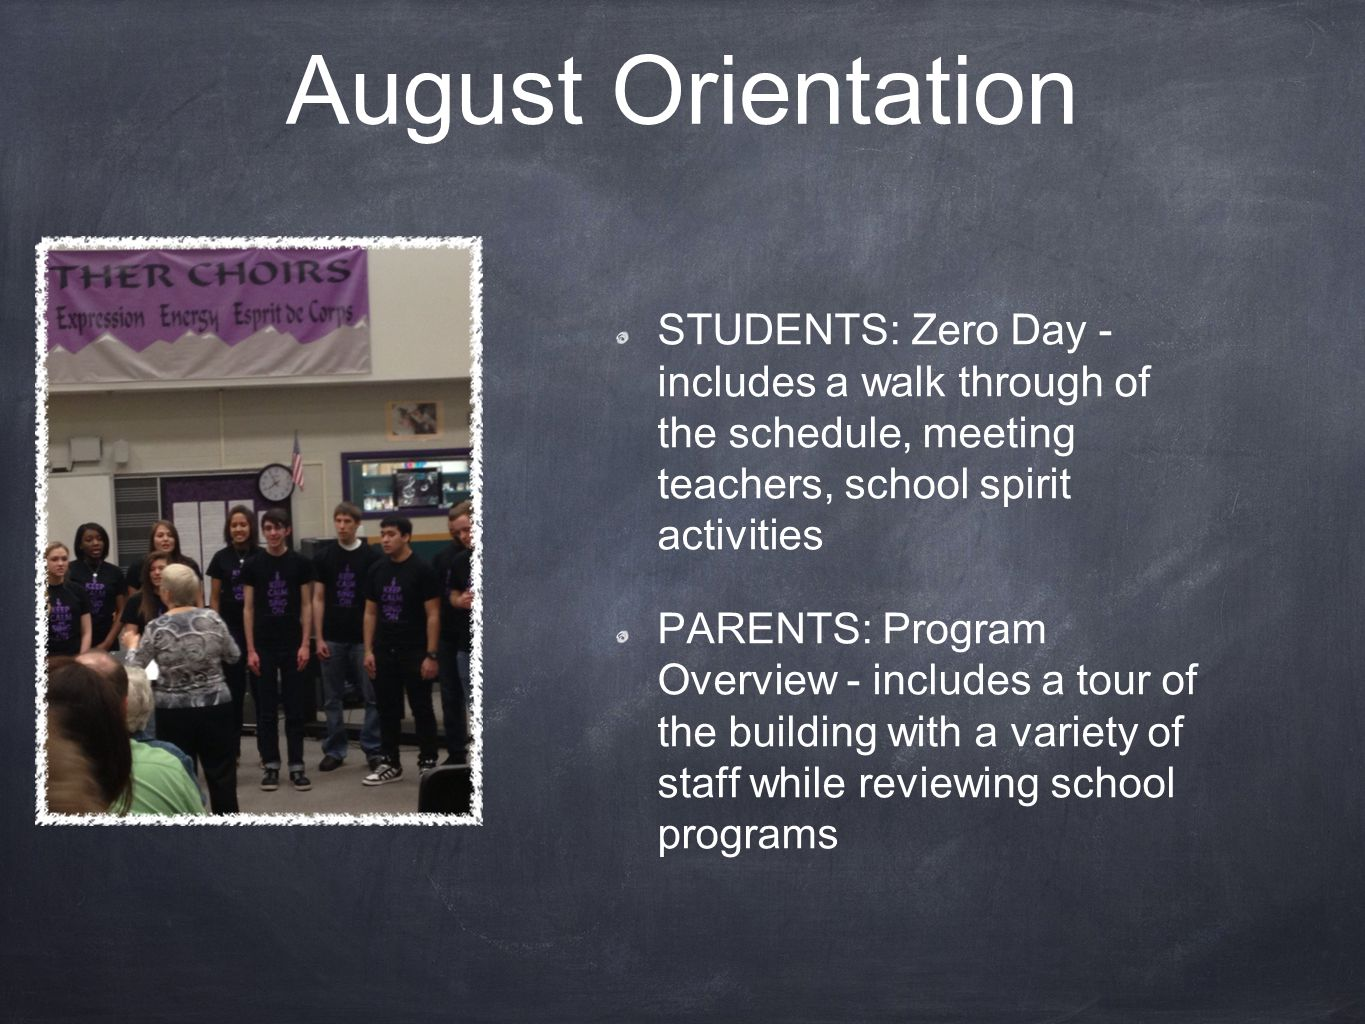 August Orientation STUDENTS: Zero Day - includes a walk through of the schedule, meeting teachers, school spirit activities PARENTS: Program Overview - includes a tour of the building with a variety of staff while reviewing school programs